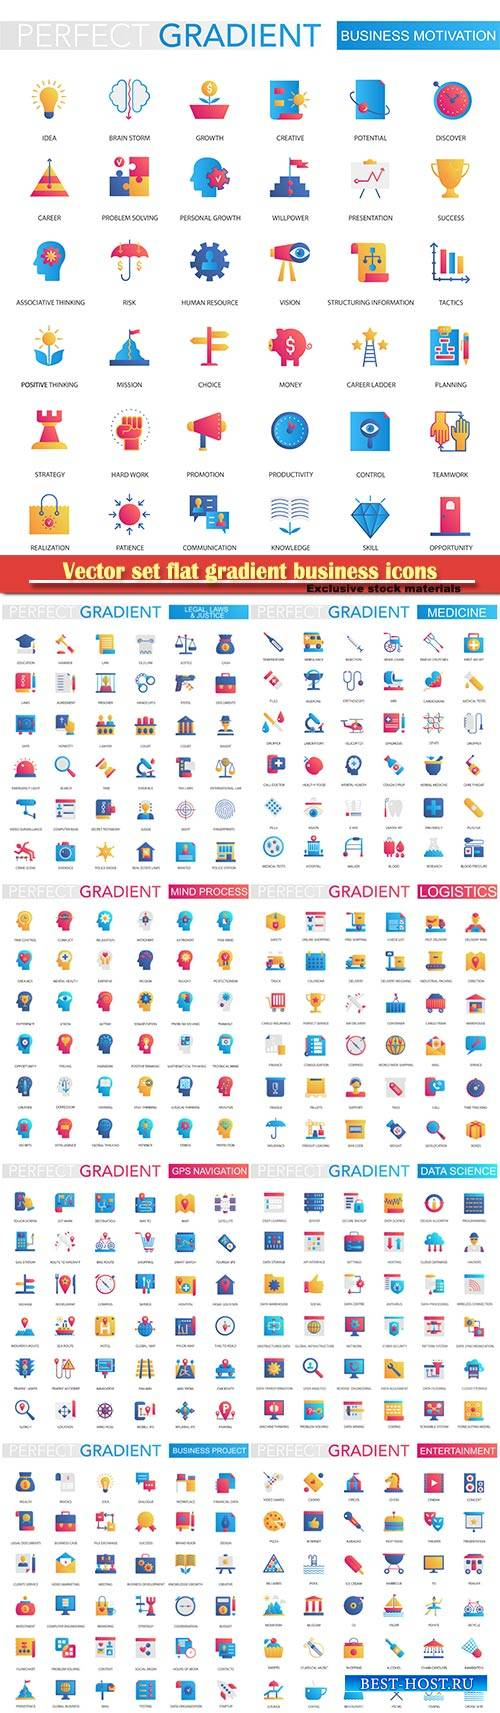 Vector set flat gradient business icons